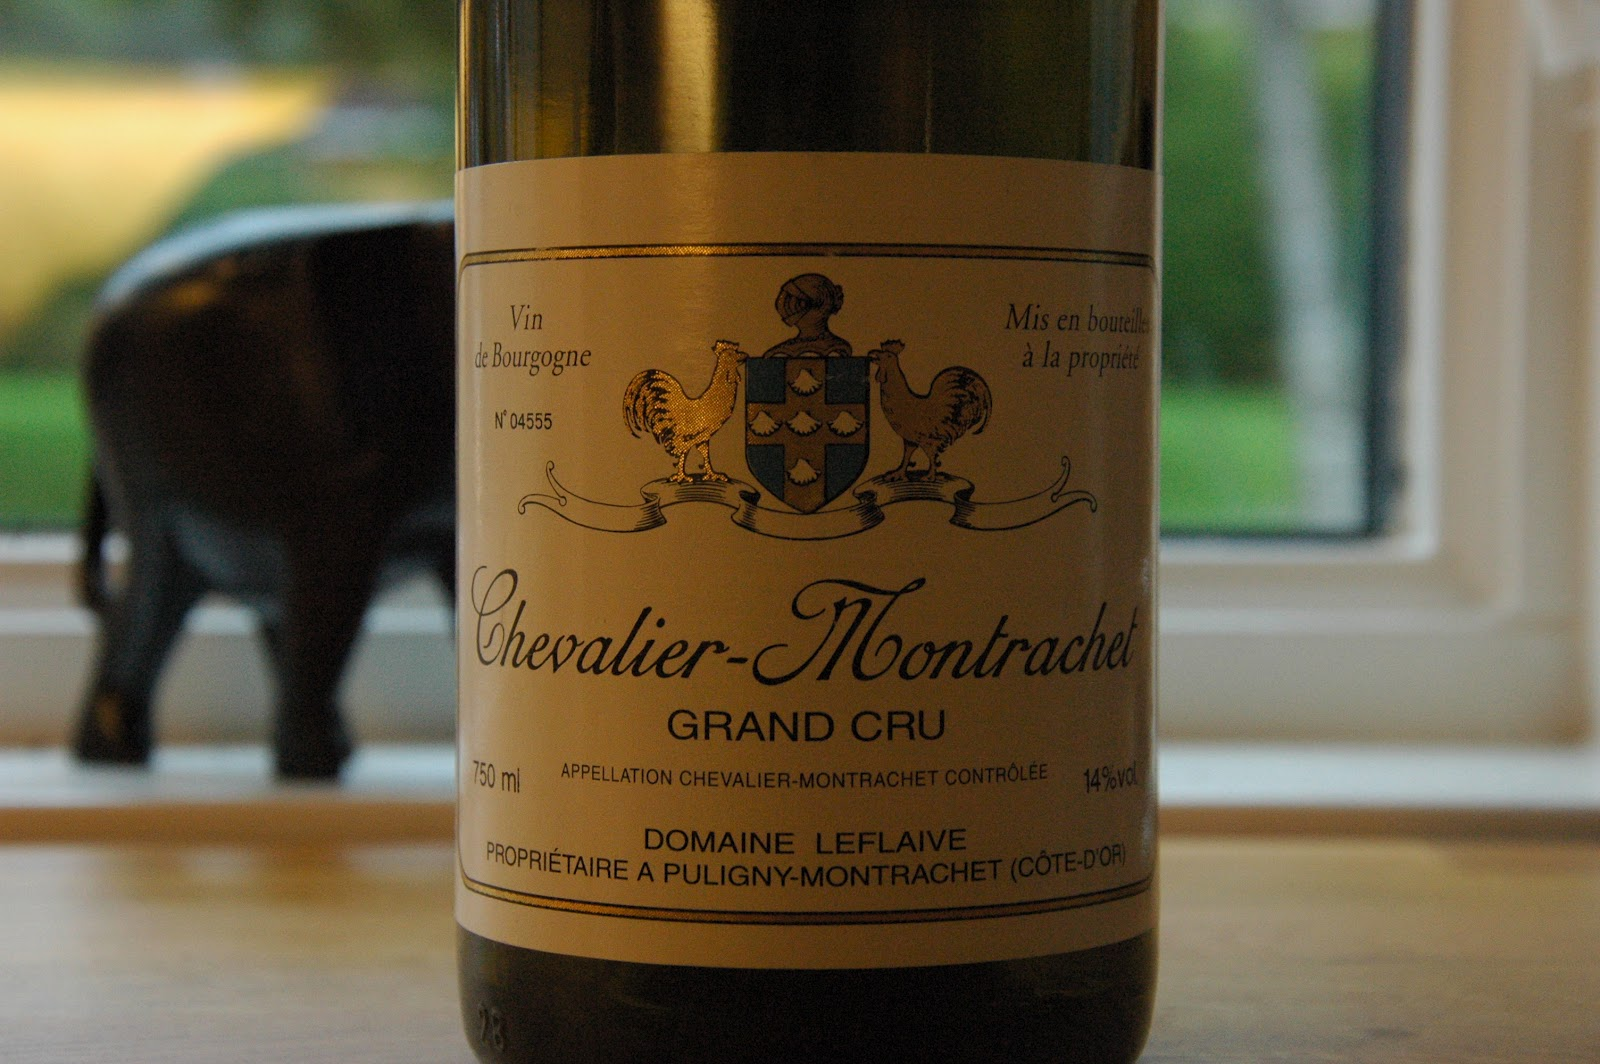 My Wines And More: 06 Domaine Leflaive Chevalier-Montrachet